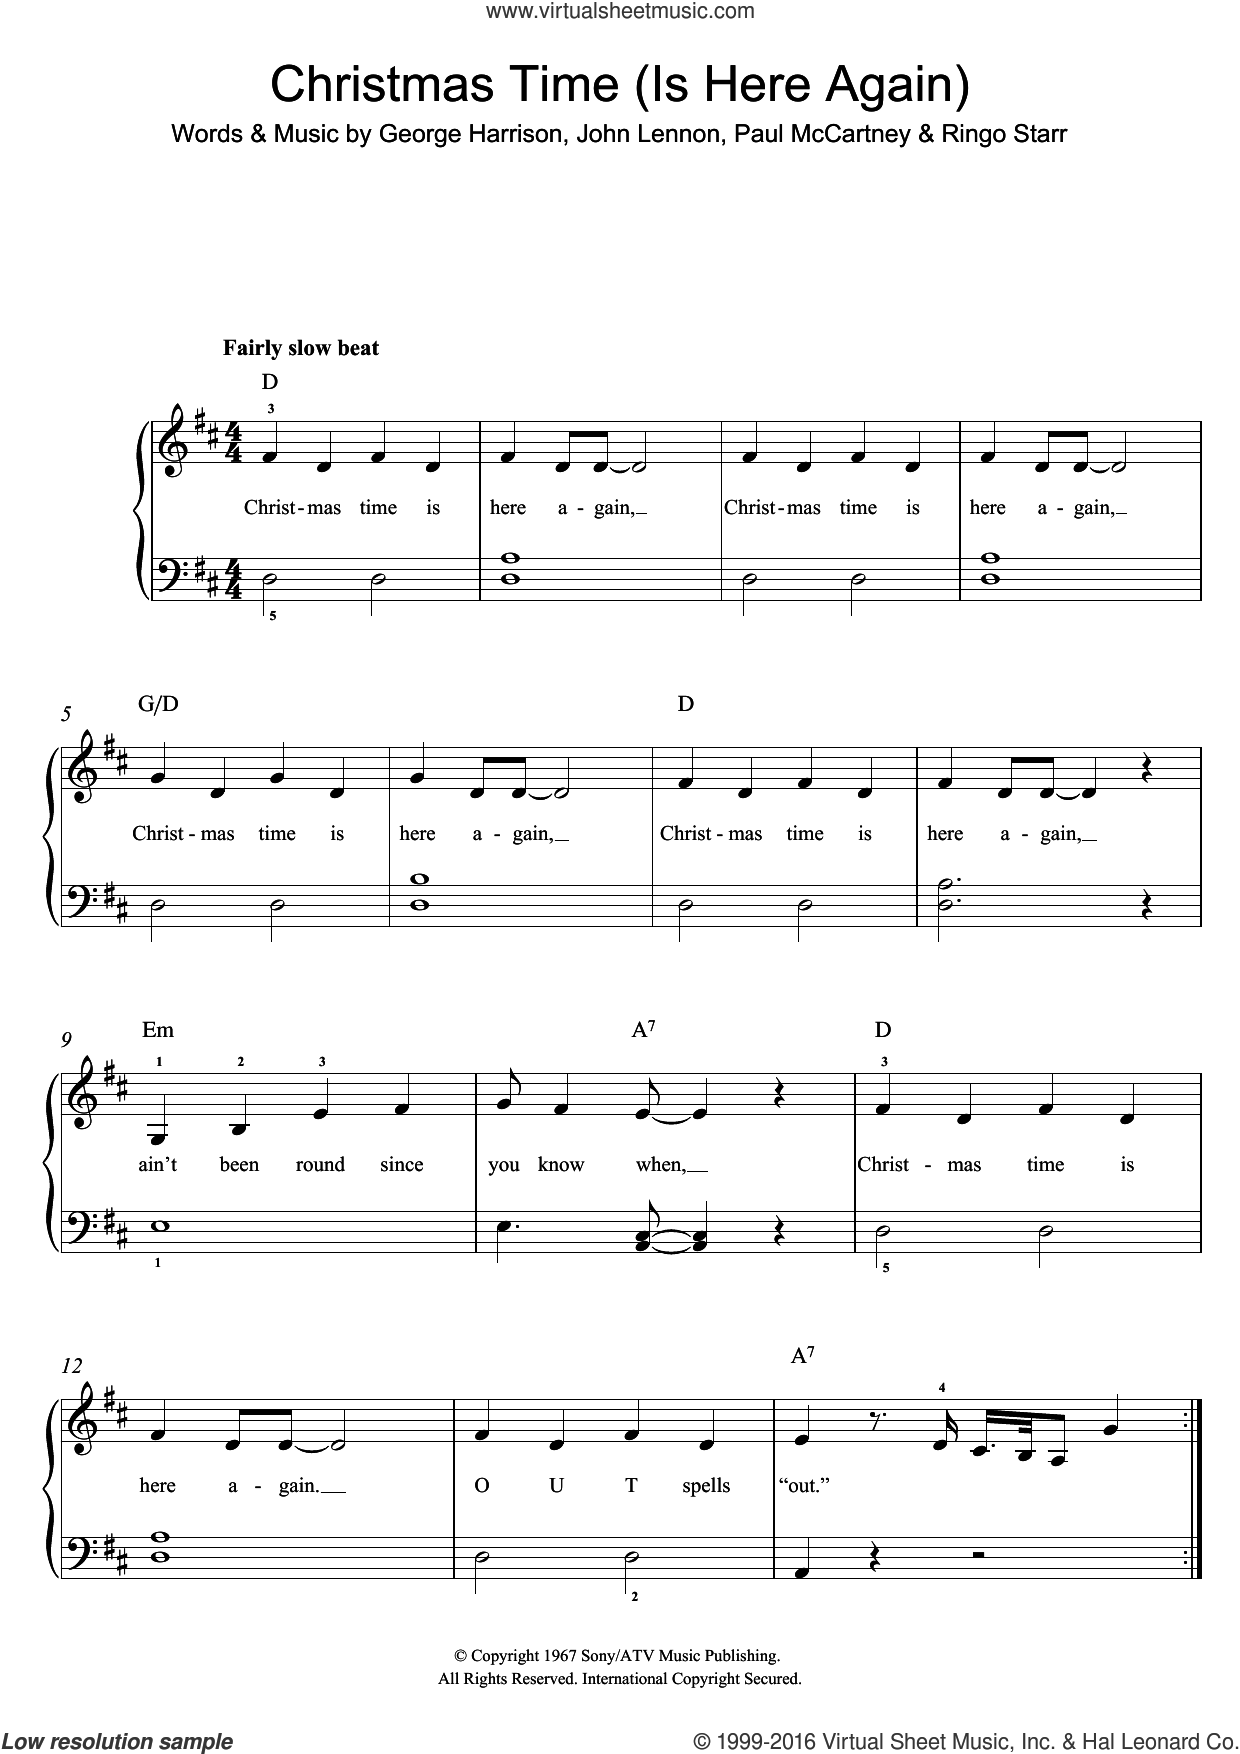 Christmas Time (Is Here Again) sheet music for piano solo by The Beatles, George Harrison, John Lennon, Paul McCartney and Ringo Starr. Score Image Preview.